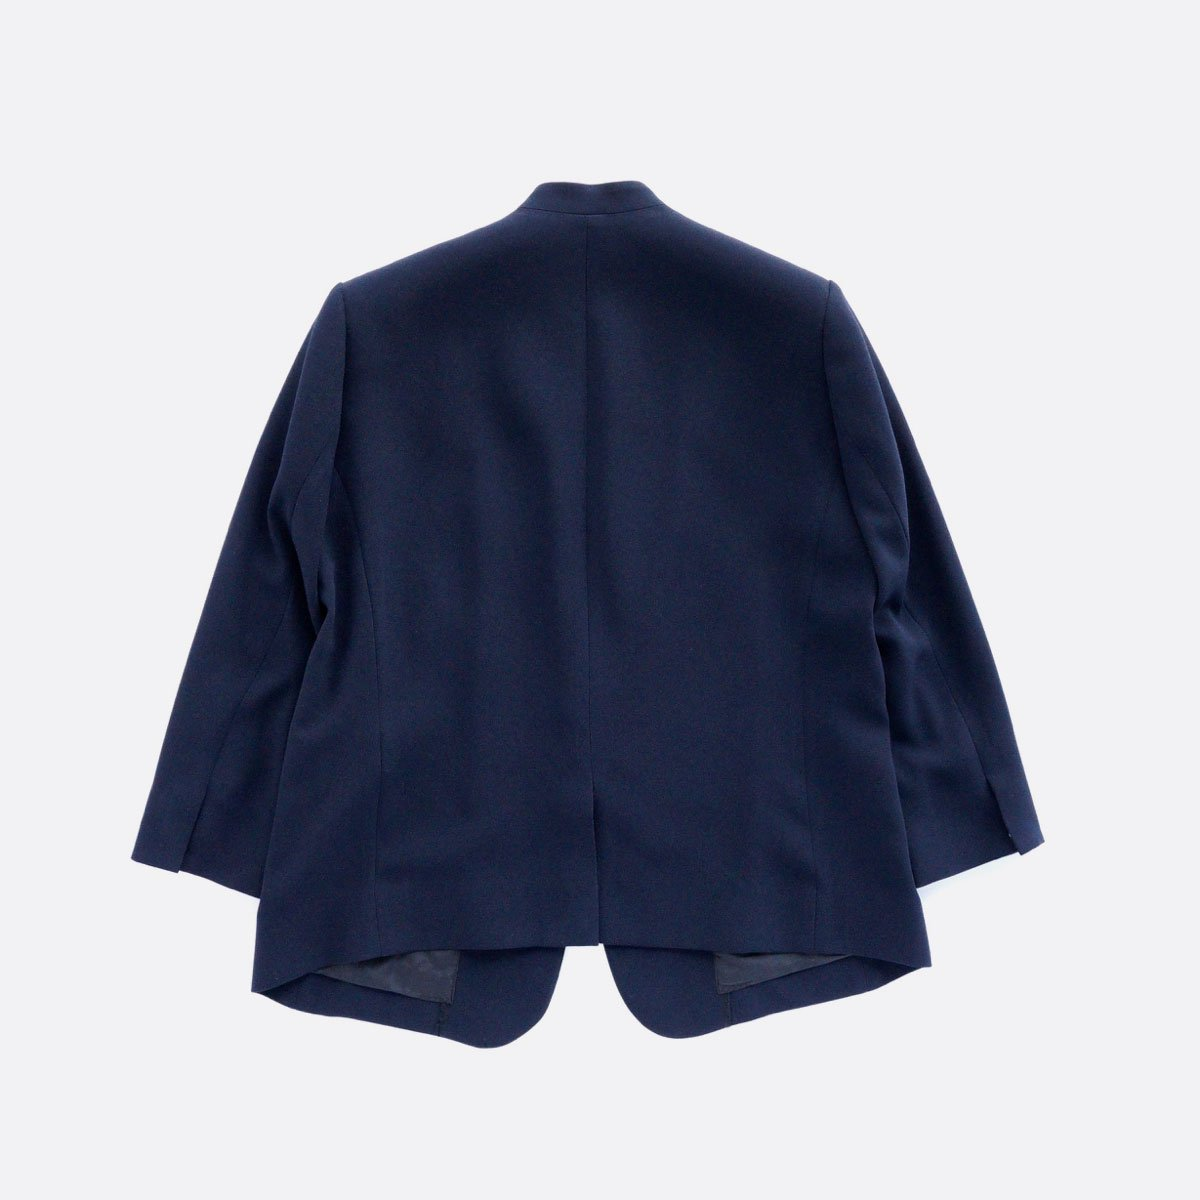 NO CONTROL AIR ACETATE & POLYESTER DOUBLE CROTH NO COLOR JACKET (NAVY)2